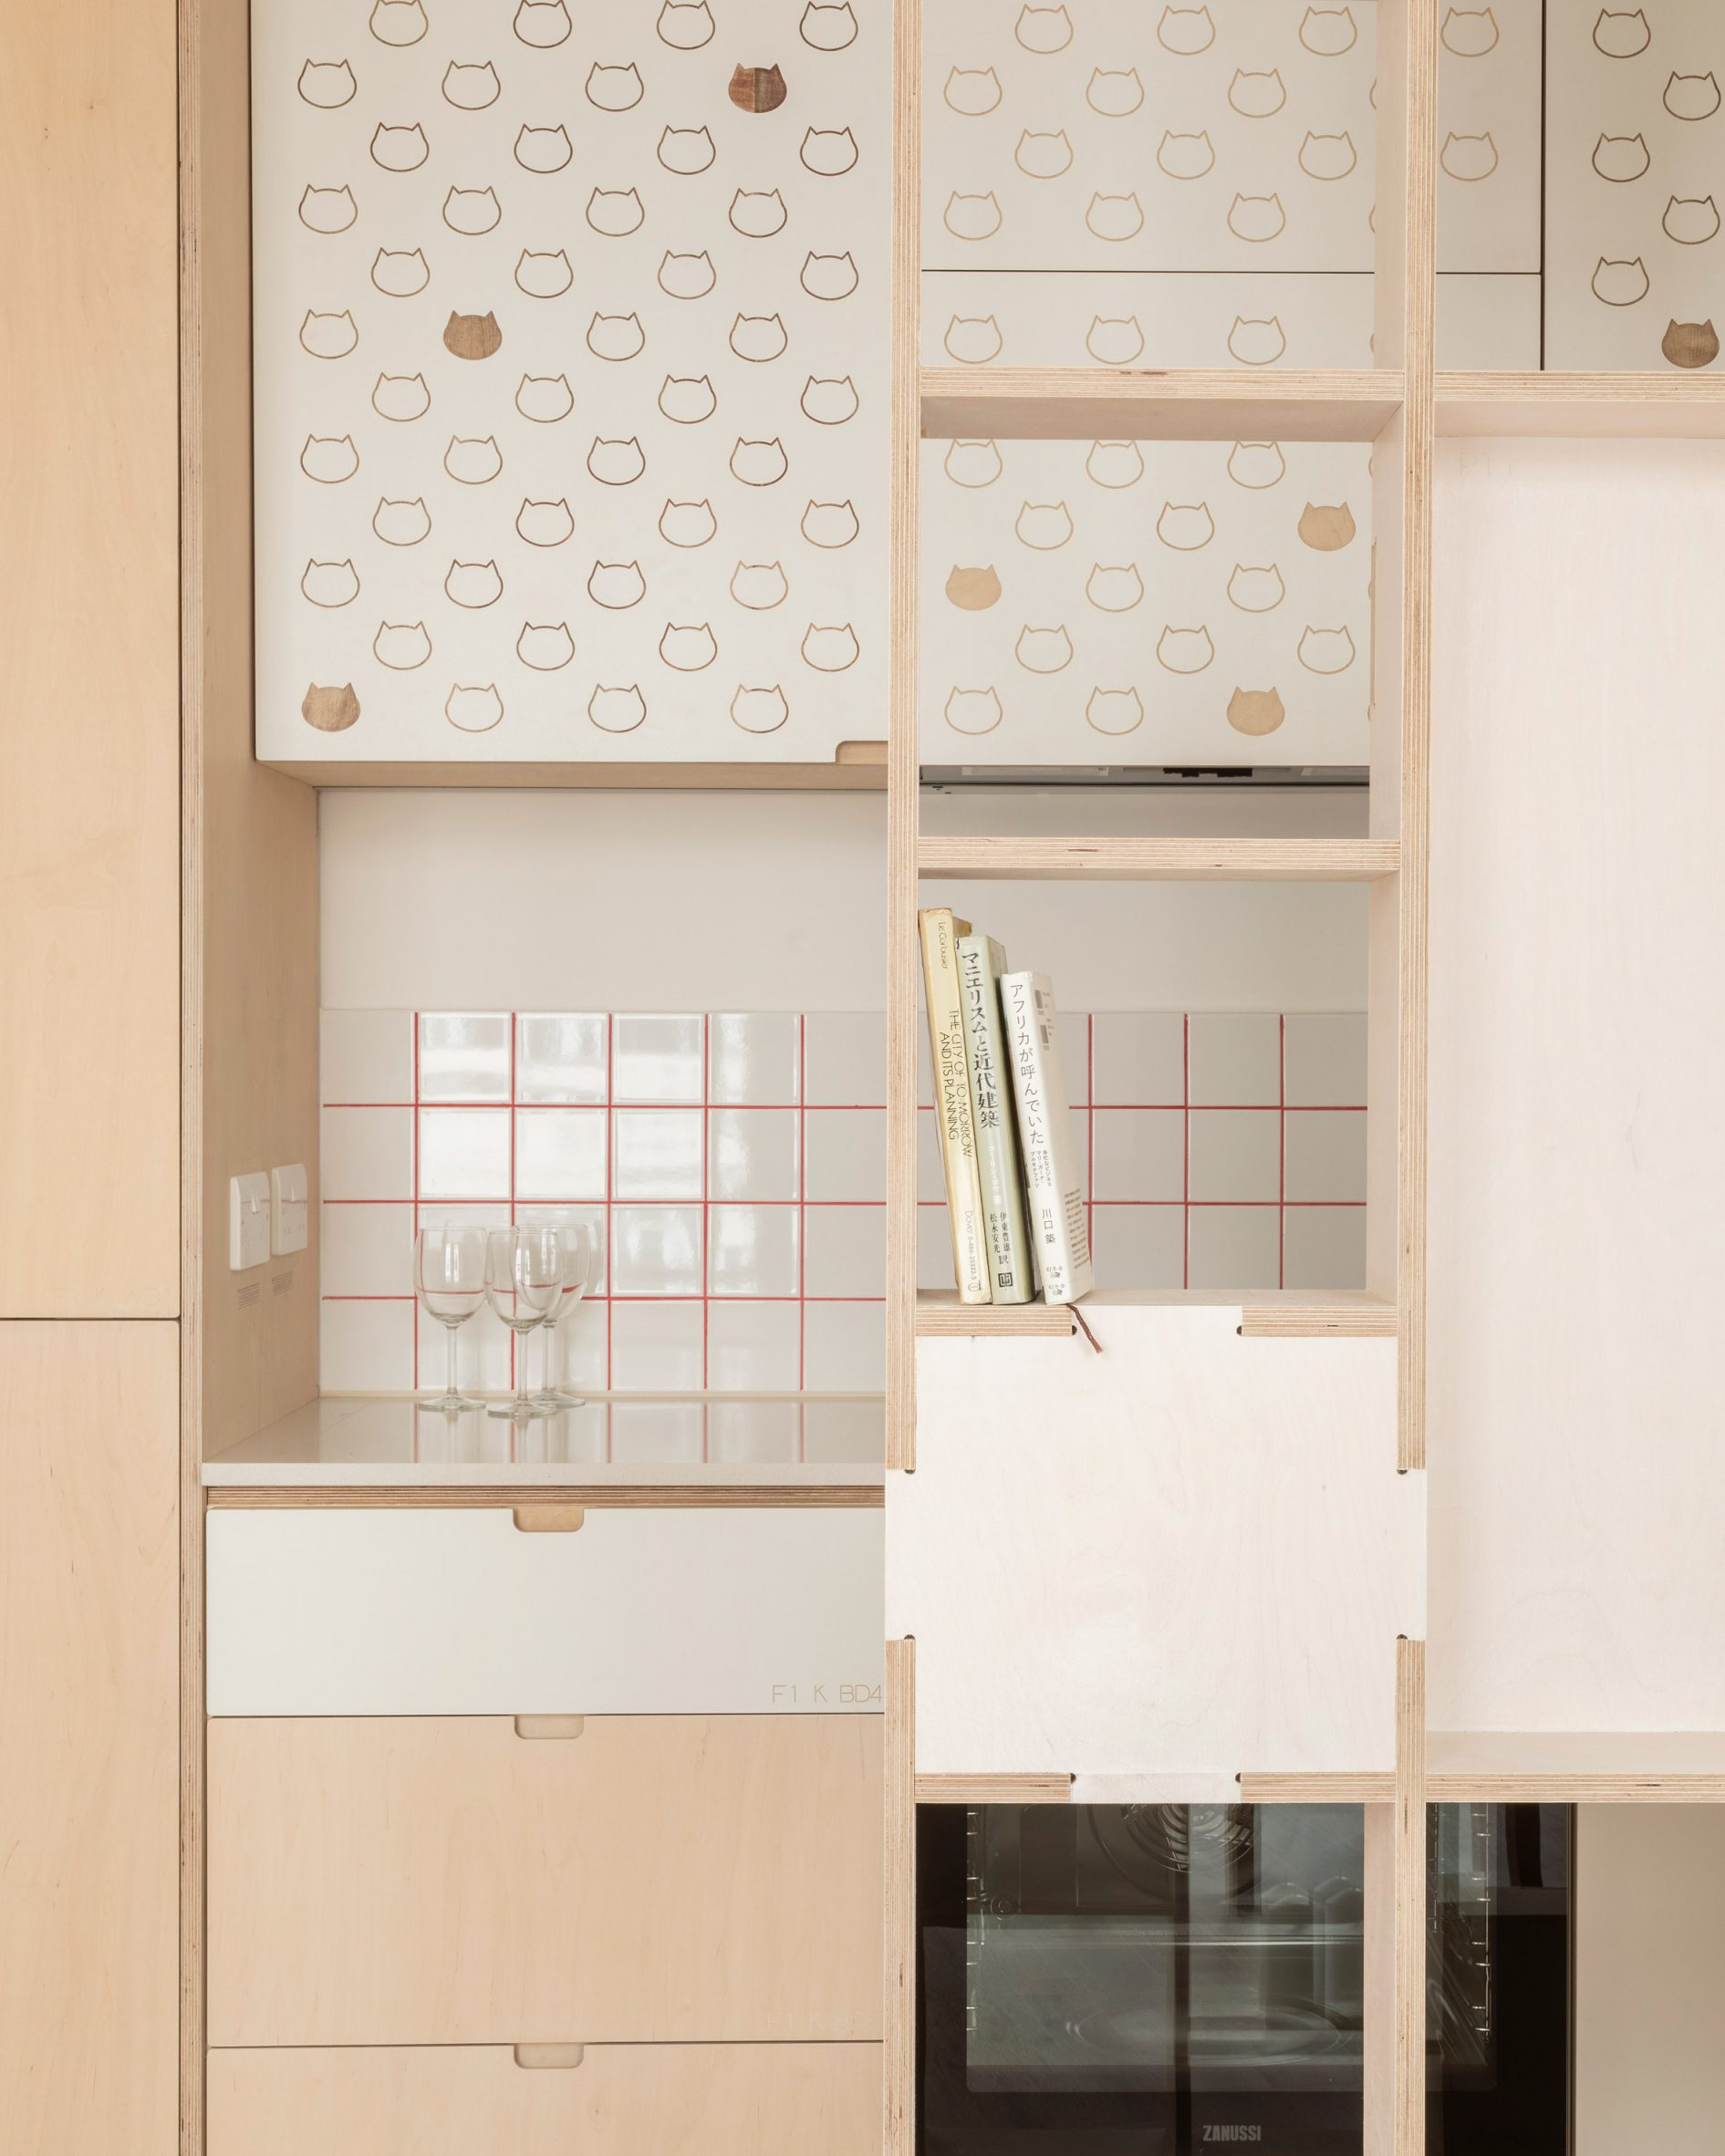 Kitchen with cat details in The Queen of Catford by Tsuruta Architects